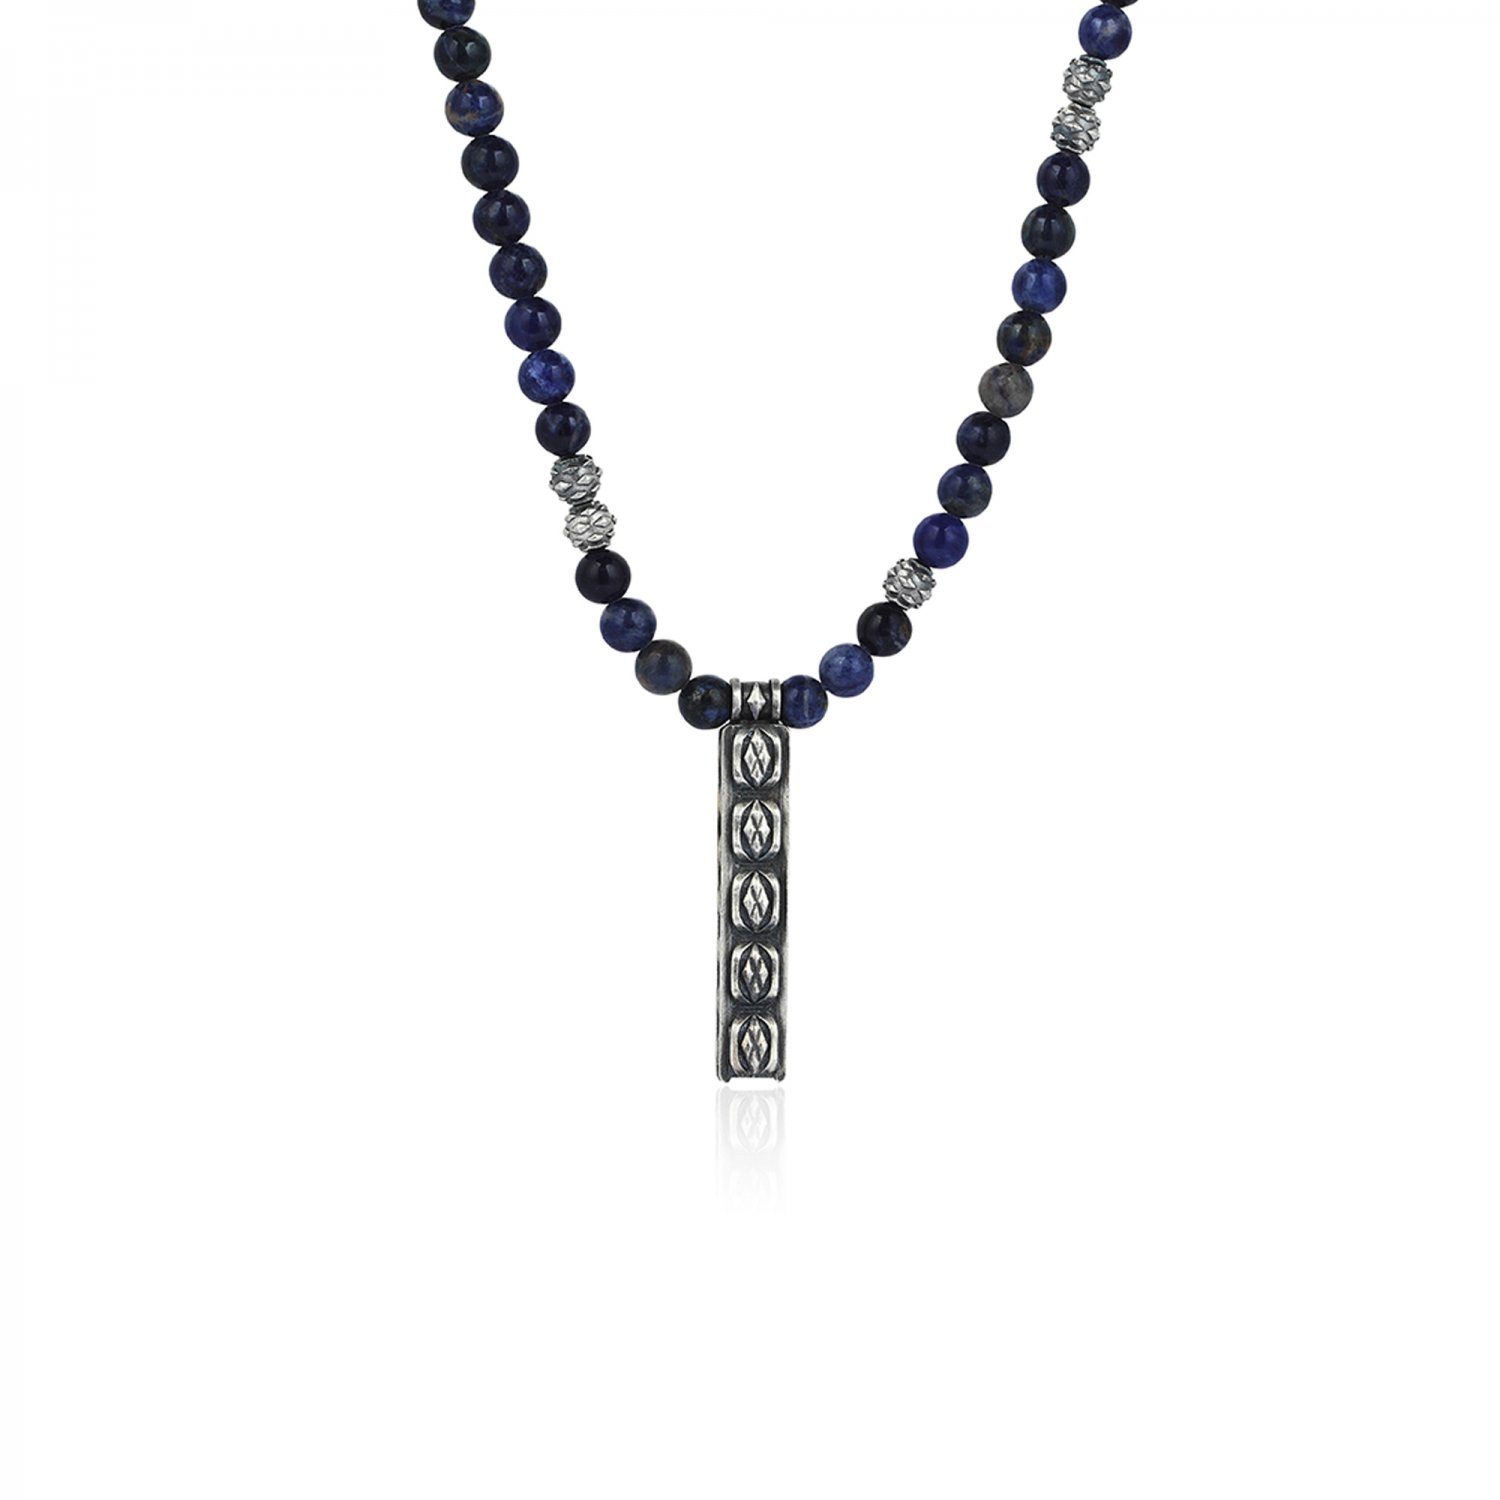 Cubic Style Beads Necklace with Bolivian Sodalite